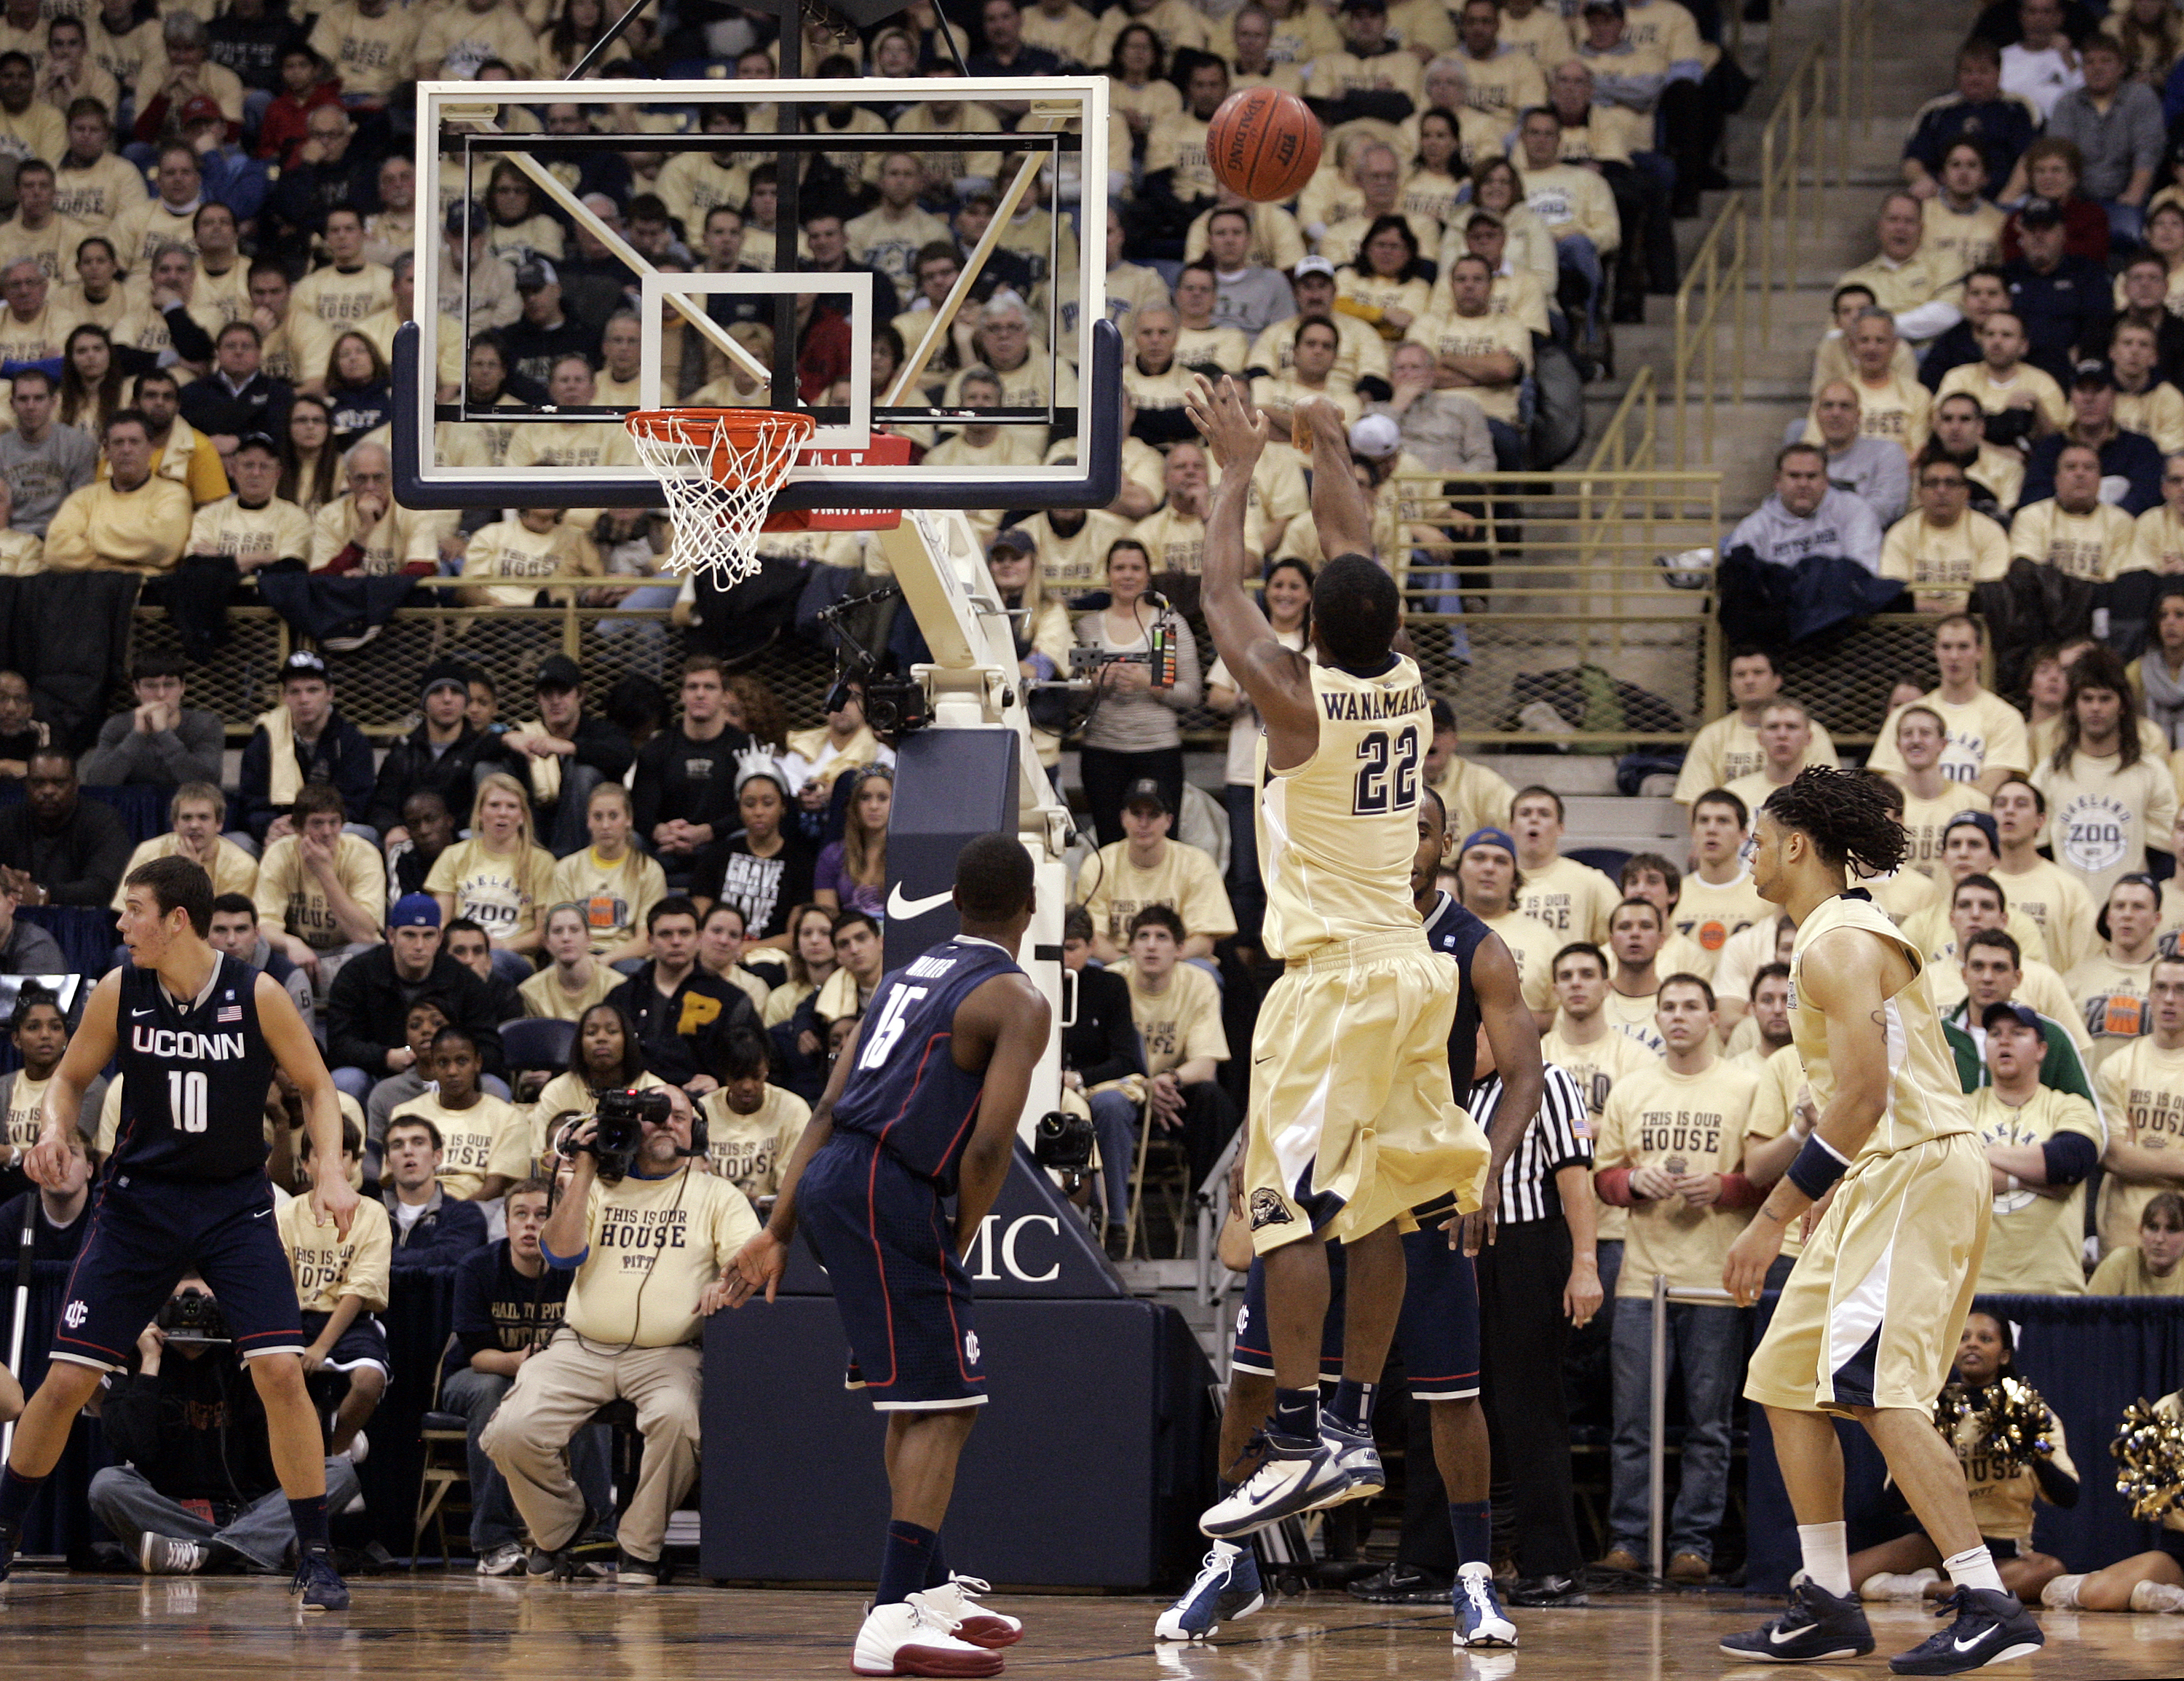 PITTSBURGH, PA - DECEMBER 27:  Brad Wanamaker #22 of the Pittsburgh Panthers pulls up for a three against the Connecticut Huskies at Petersen Events Center on December 27, 2010 in Pittsburgh, Pennsylvania.  (Photo by Justin K. Aller/Getty Images)